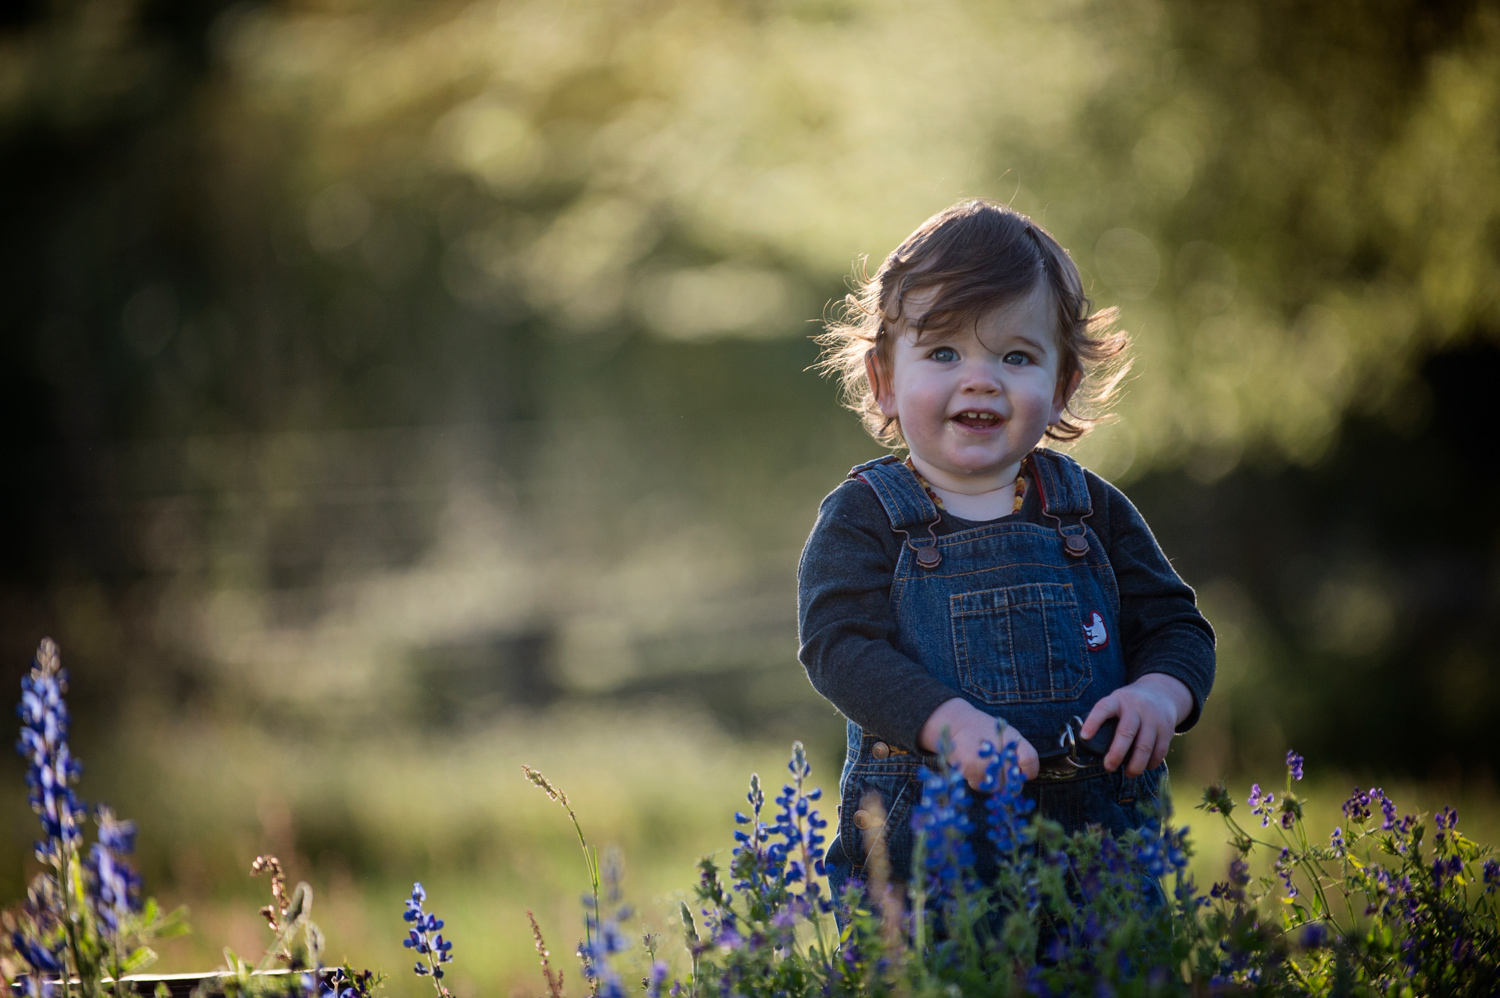 outdoor-field-child-photographer-houston.jpg